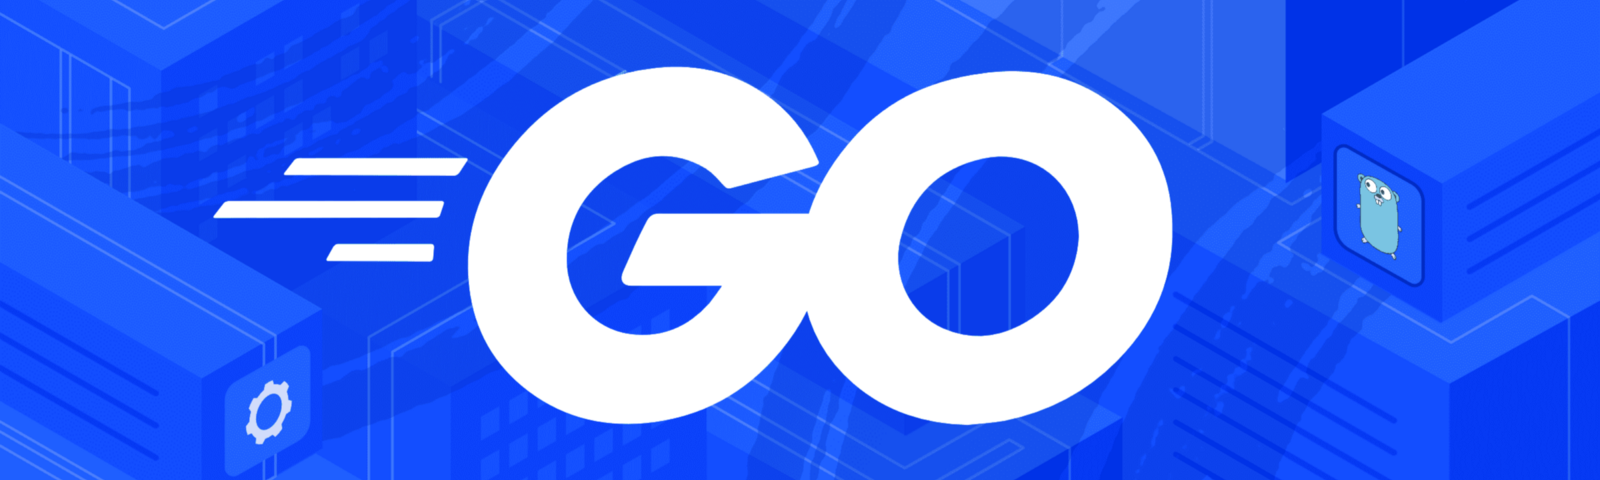 "The word ""Go"" in white letters against a blue background"